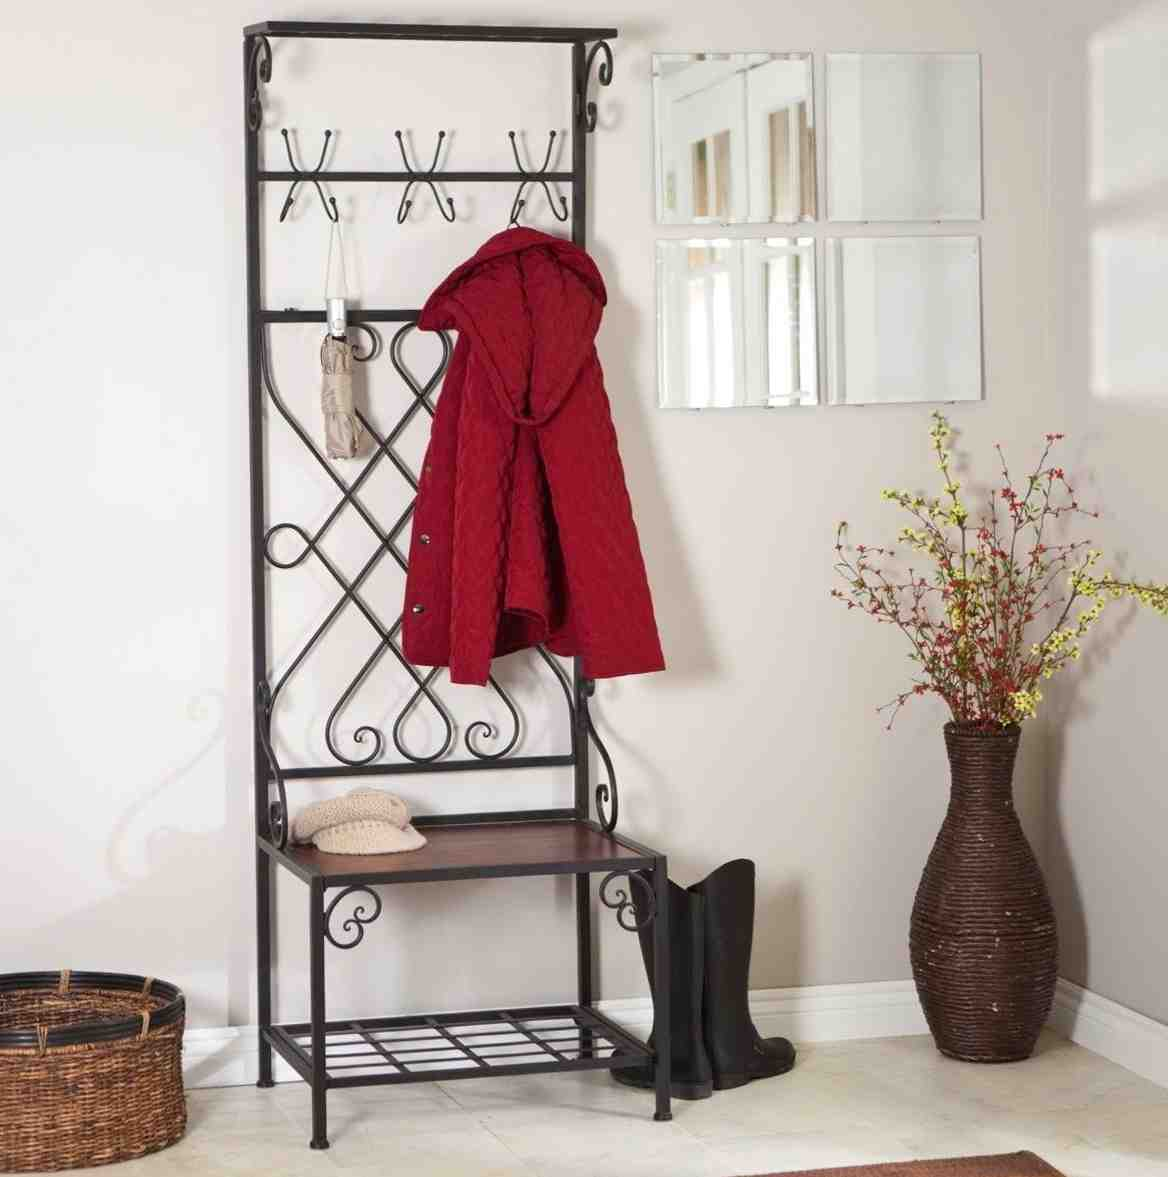 Mudroom Storage Bench And Coat Rack : Metal entryway storage bench with coat rack home